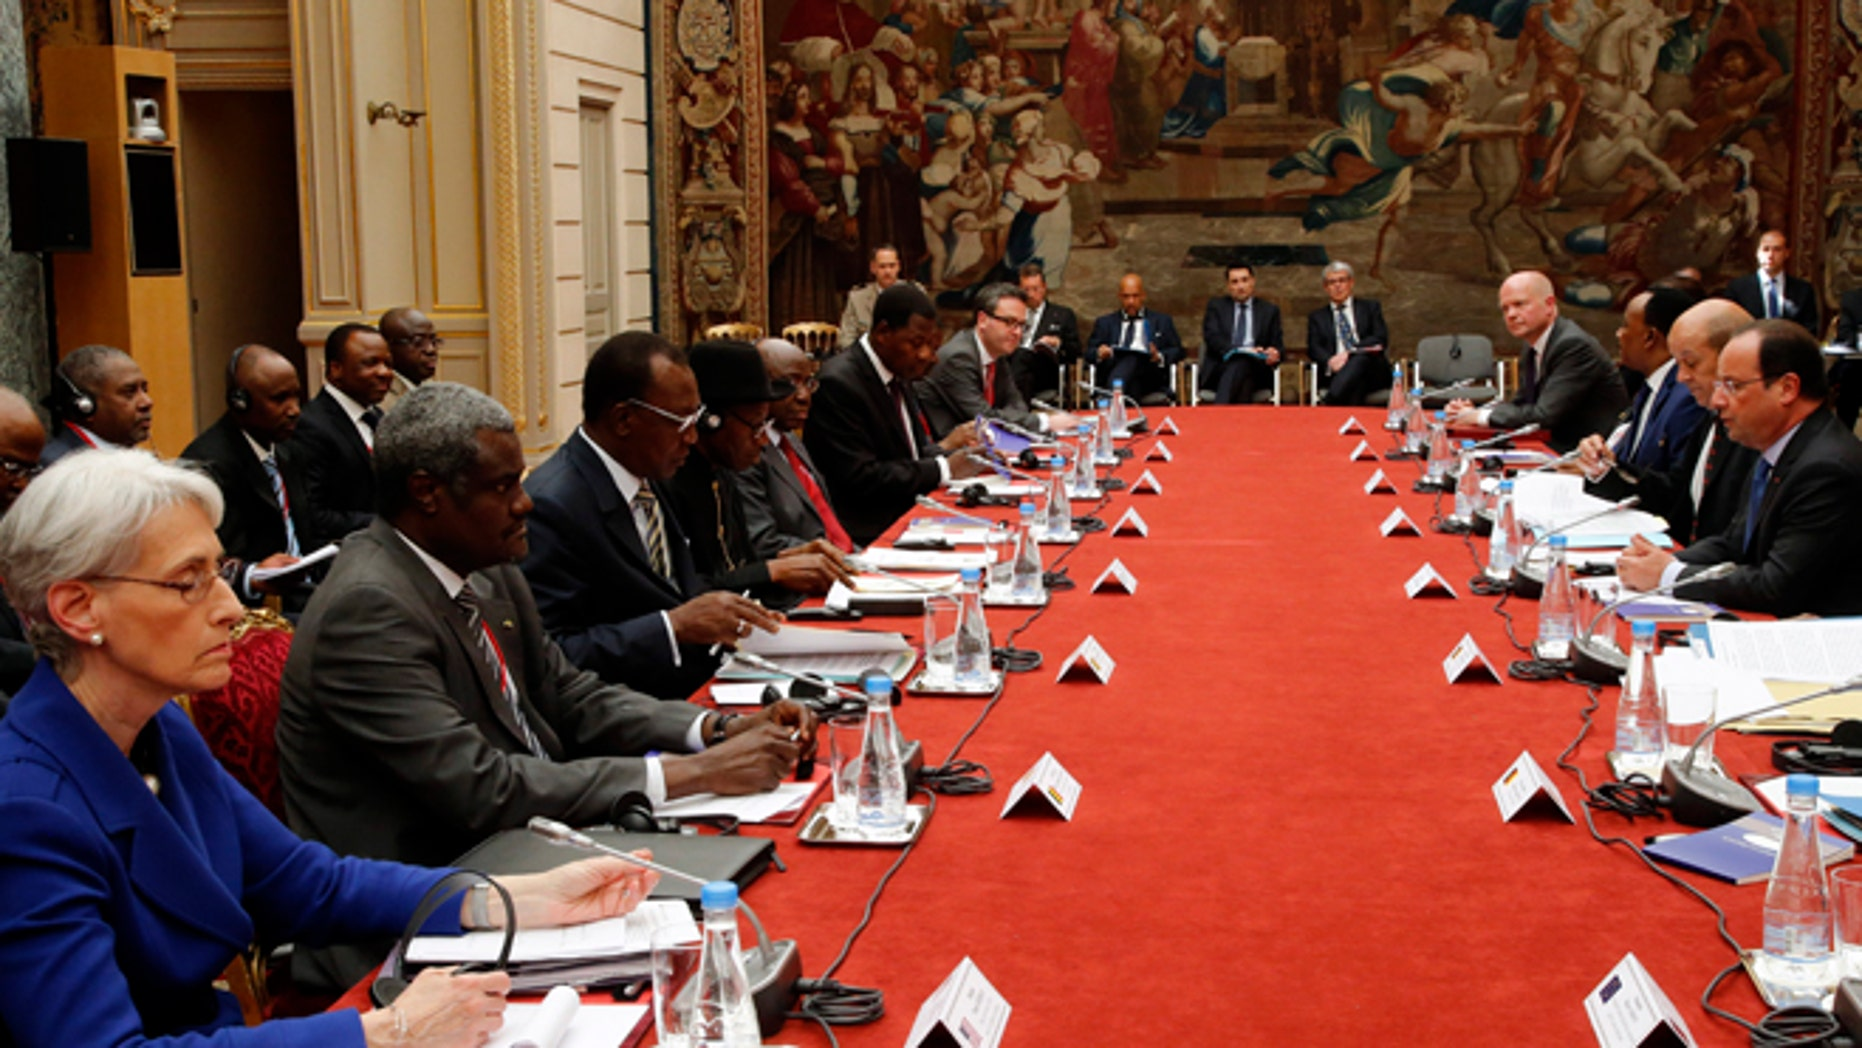 """May 17, 2014: U.S. Undersecretary of State for Political Affairs Wendy Sherman, left, looks on as French President Francois Hollande, right, talks during the round table photo session at the """"Paris' Security in Nigeria summit"""", at the Elysee Palace, in Paris."""